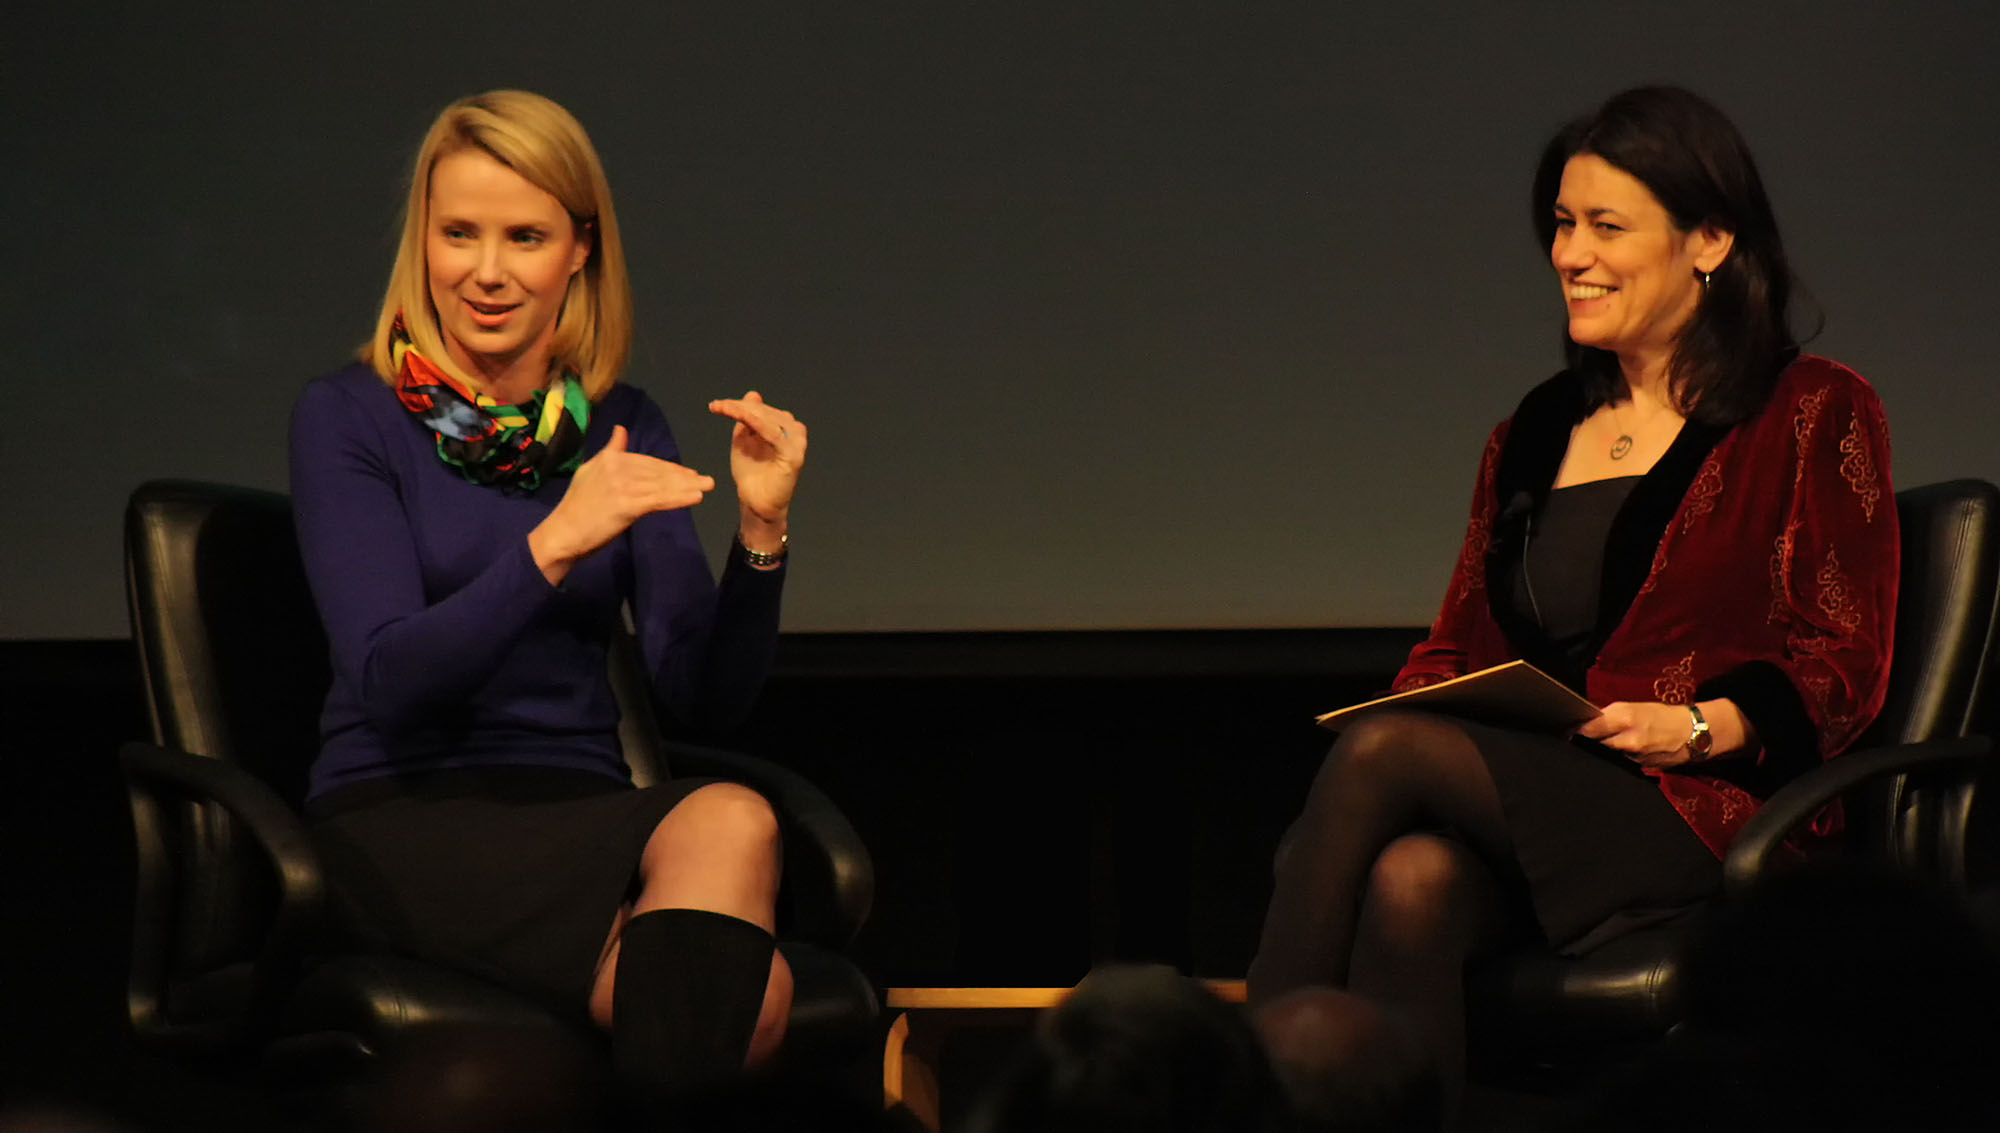 Marissa Mayer talks Google culture, early mentors, and engineering at Stanford University.